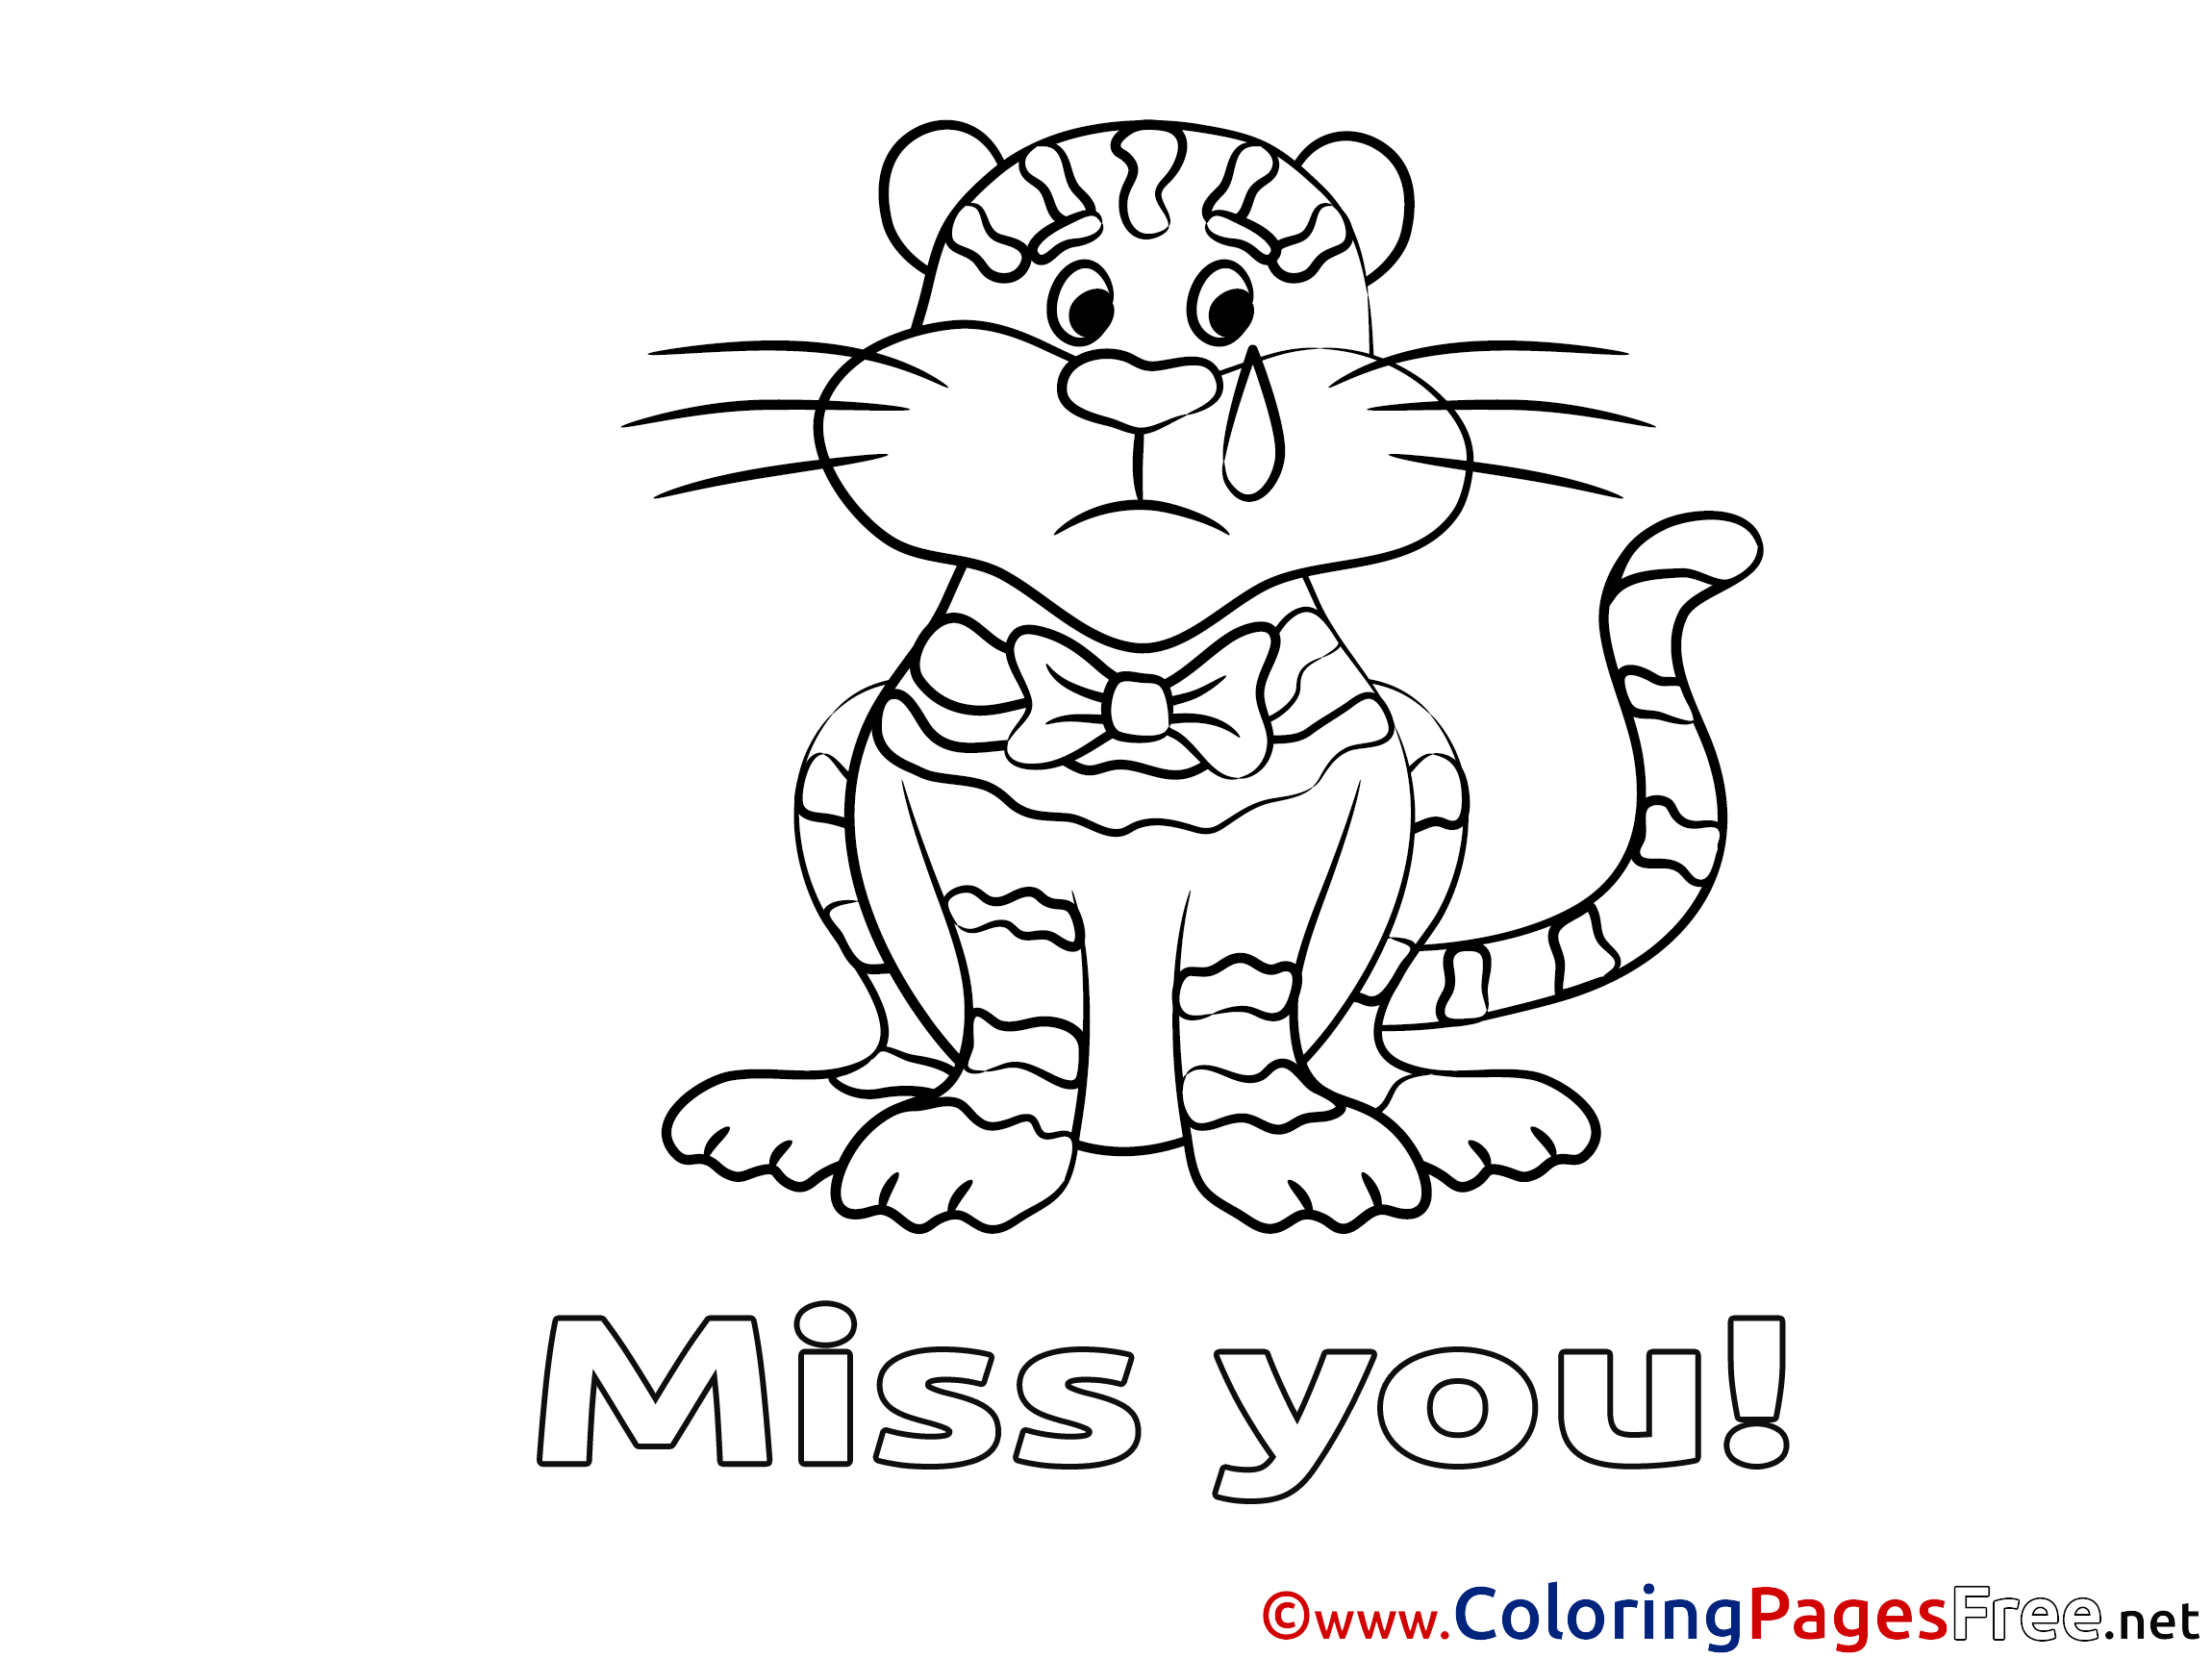 Miss You Coloring Pages Printable